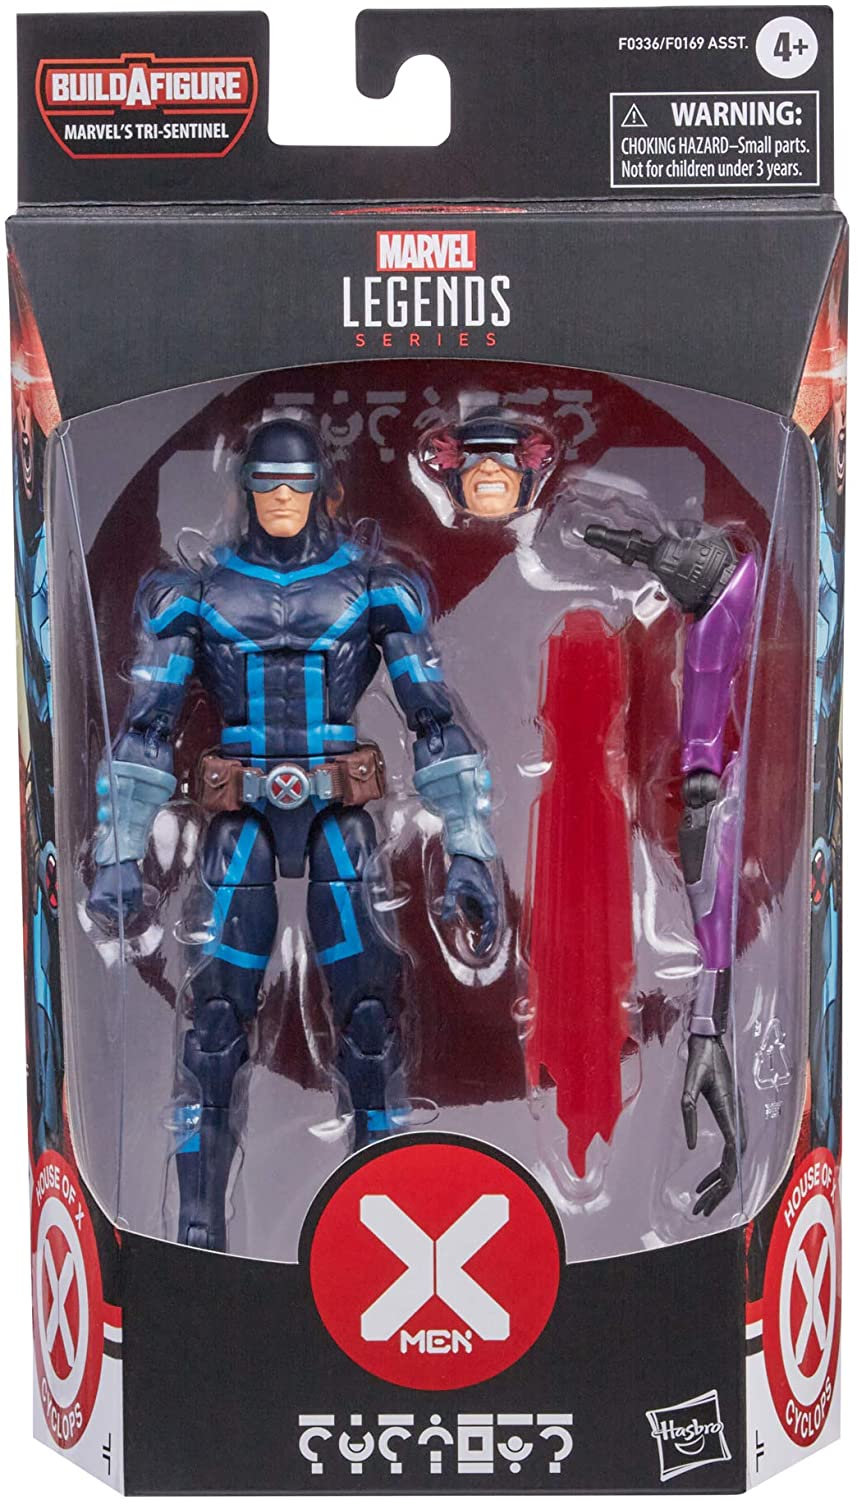 Marvel Legends X-Men - Marvel's Tri-Sentinel BAF - House of X - Cyclops Action Figure (F0336)